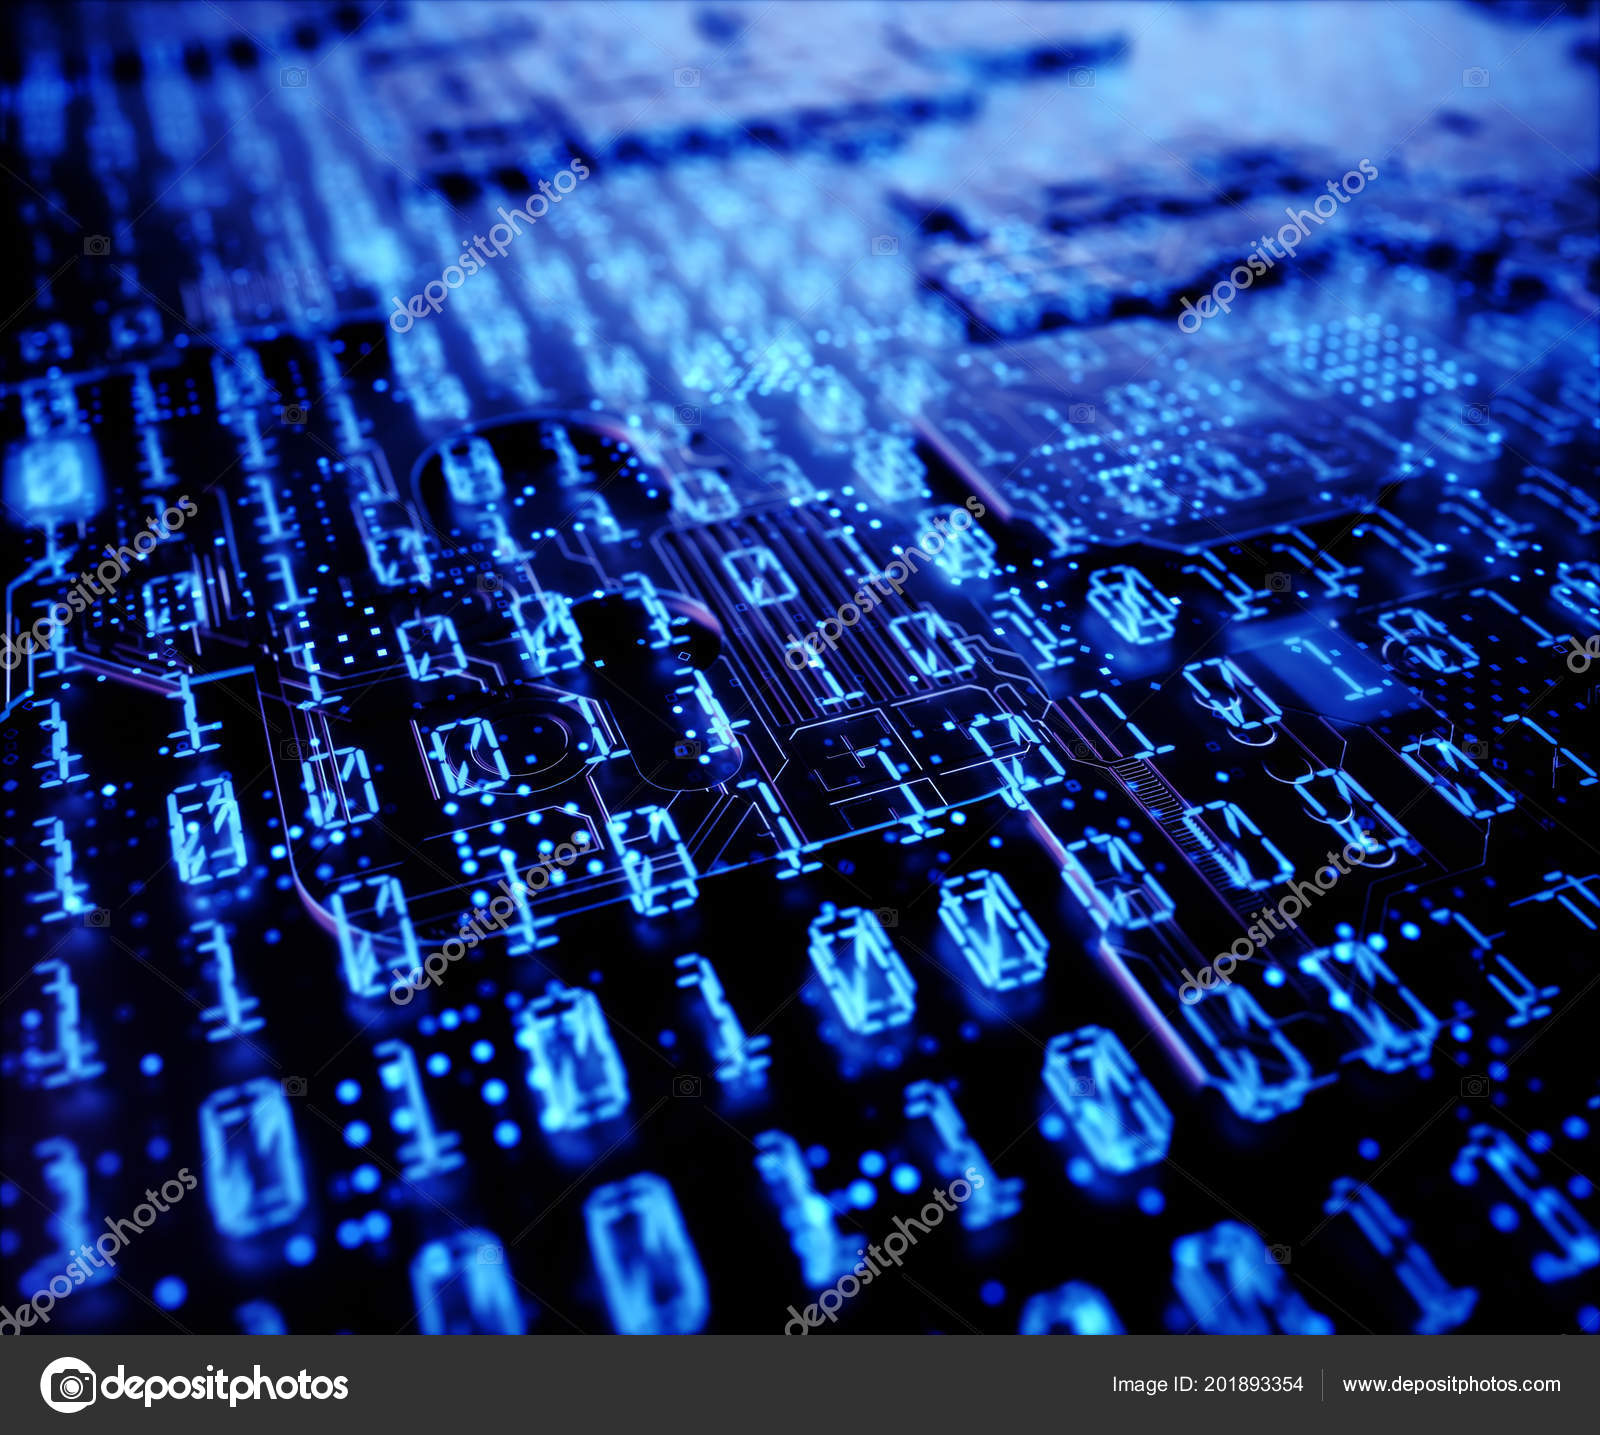 Abstract Background Binary Codes Digital Display Technology Concept Abstact With Circuit Board And Code Stock Images Photo